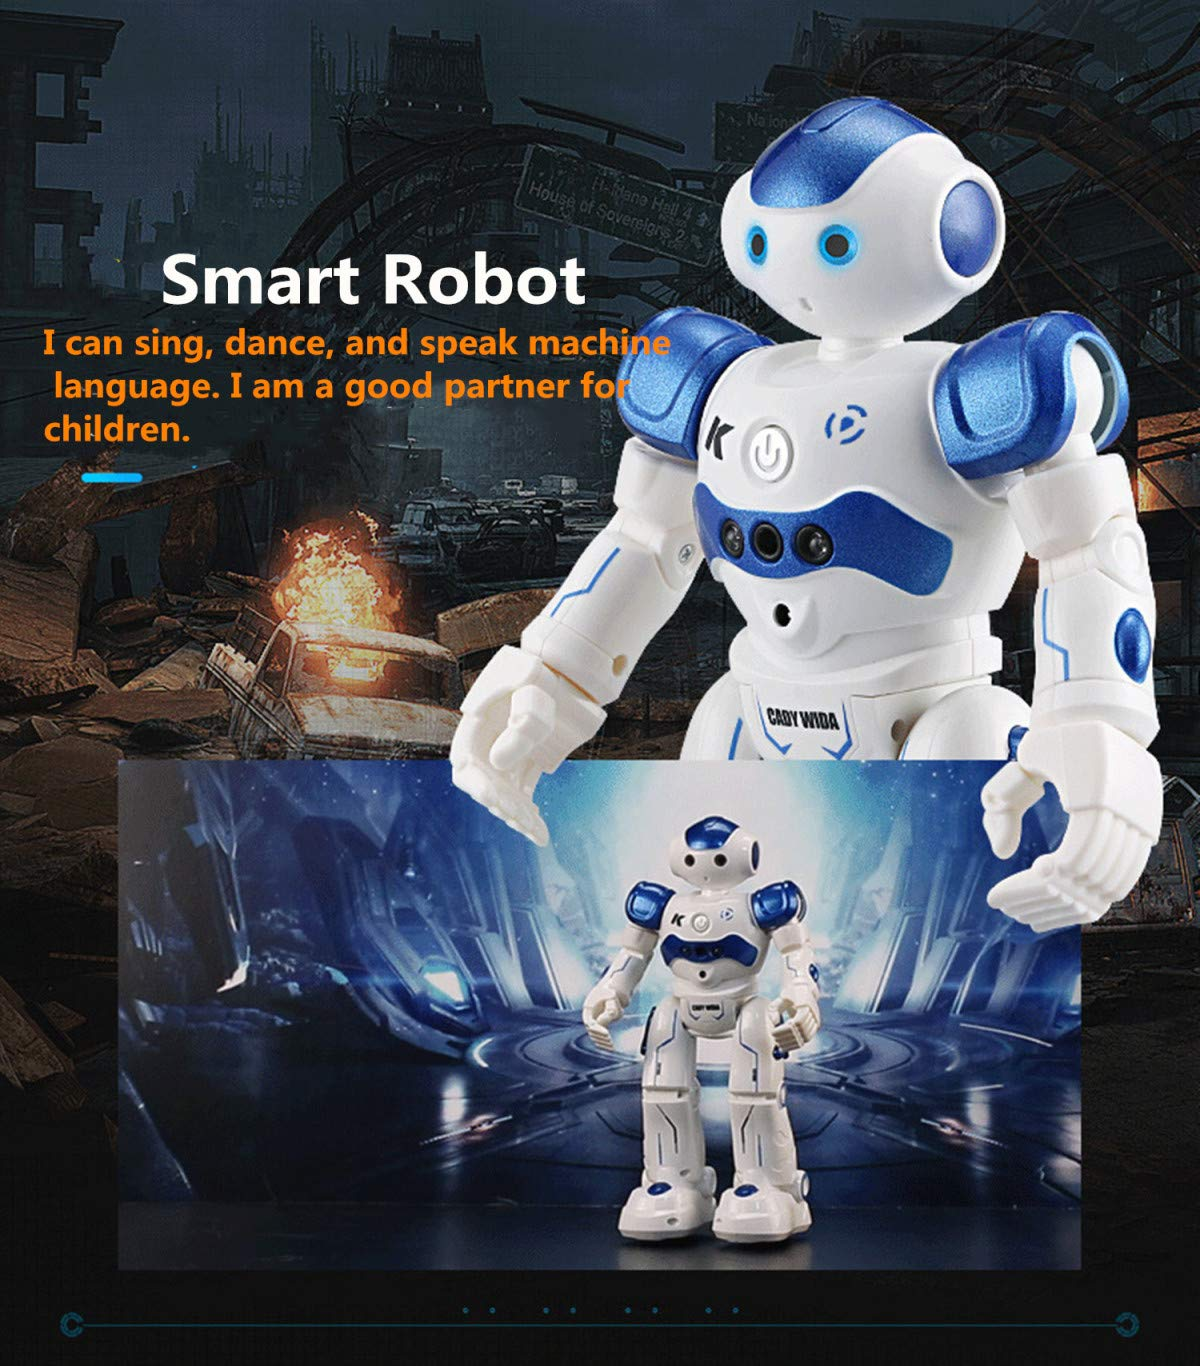 WEECOC Smart Robot Toys Gesture Control Remote Control Robot Kids Toys Birthday Can Singing Dancing Speaking Two Walking Models (White) by WEECOC (Image #4)